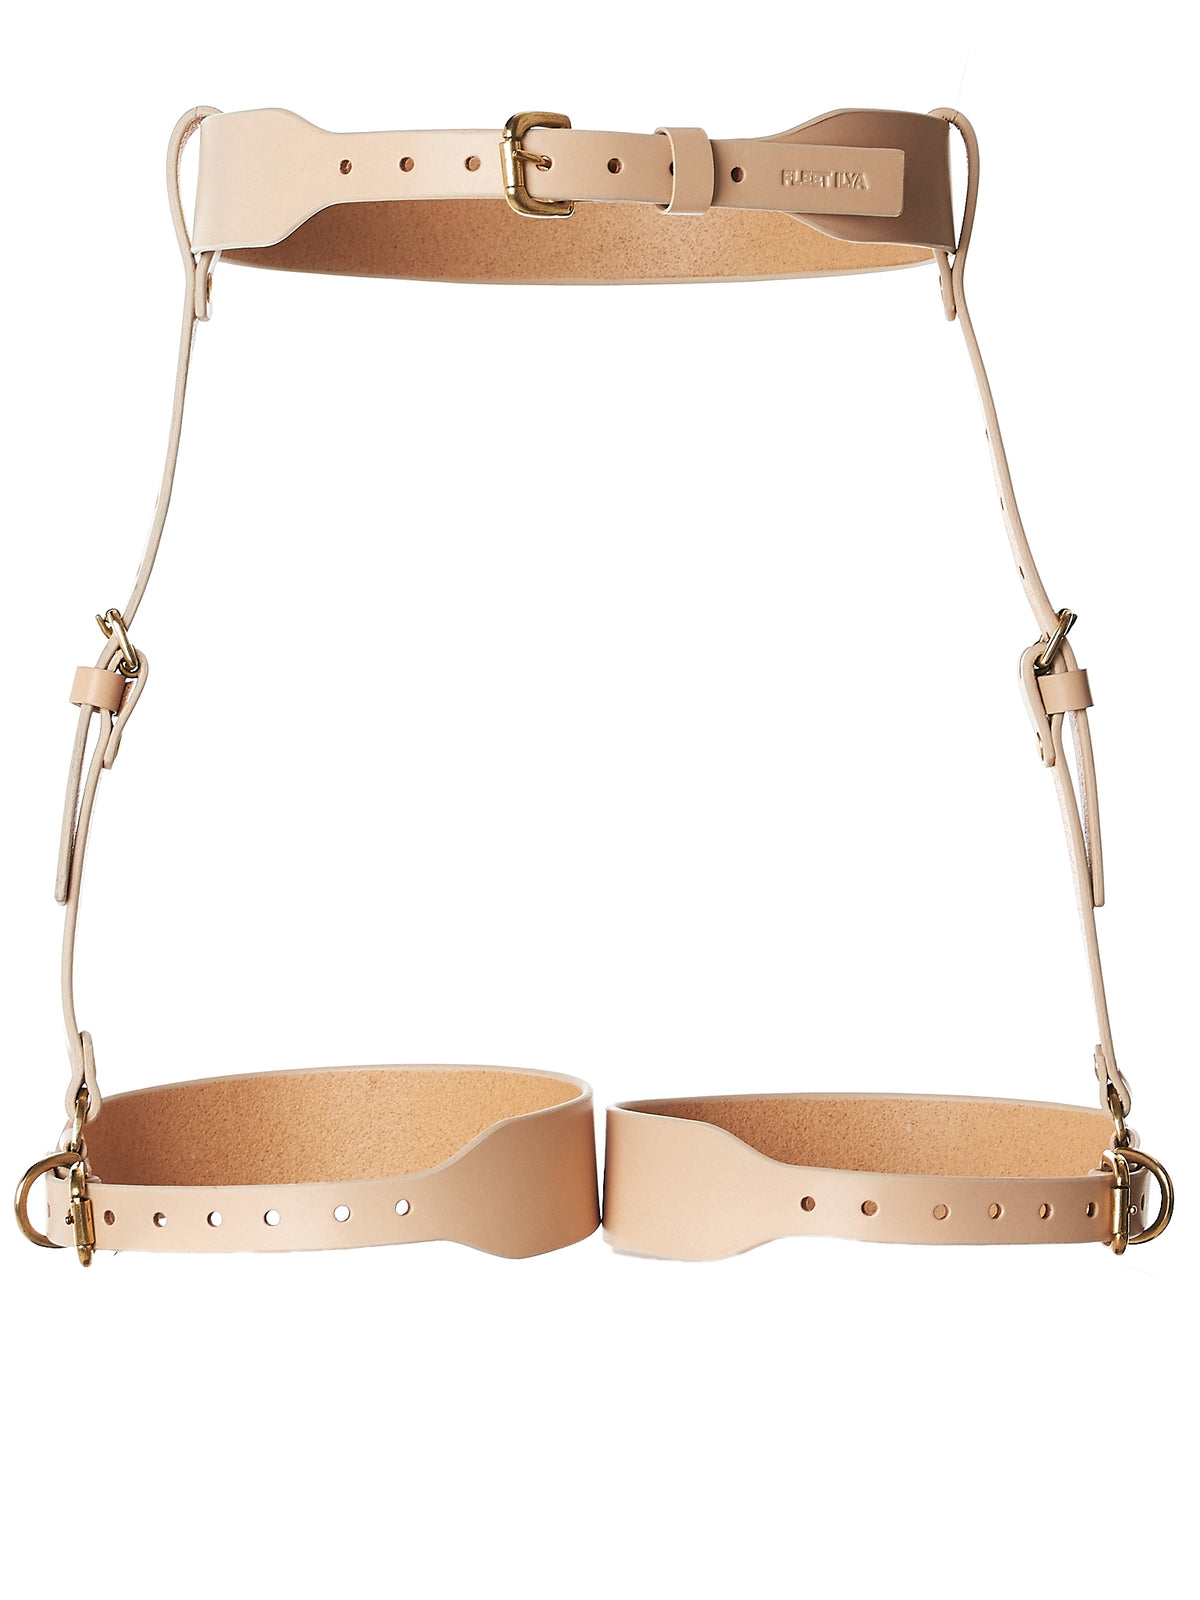 Belted Waist Harness (AW17-HRNS-CLS-NUDE)